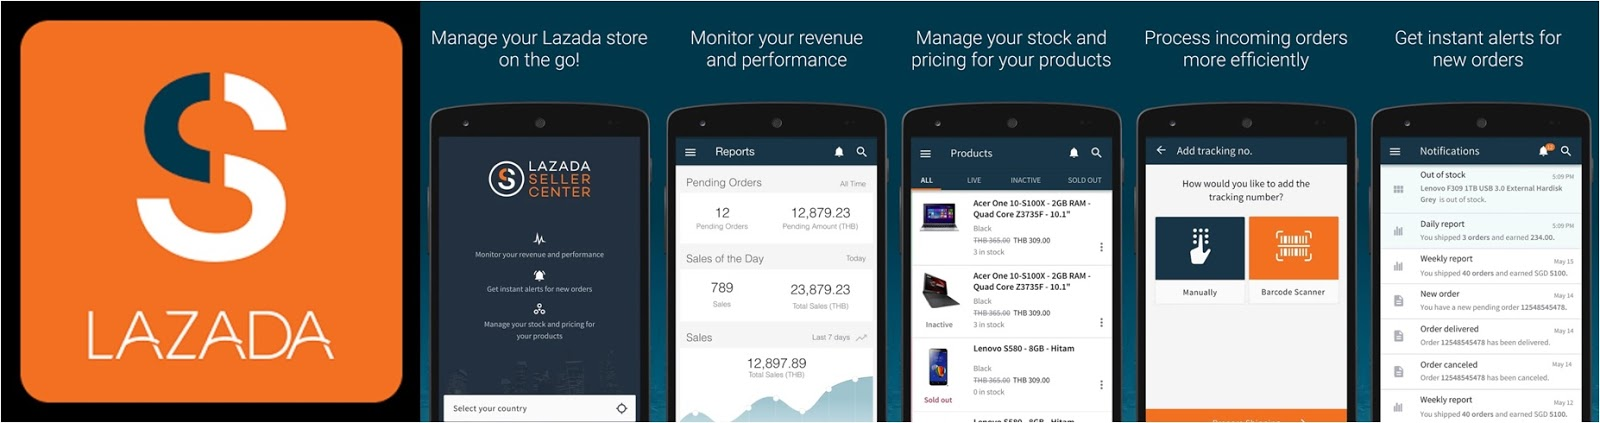 Lazada Launches Seller Center Android App – the First